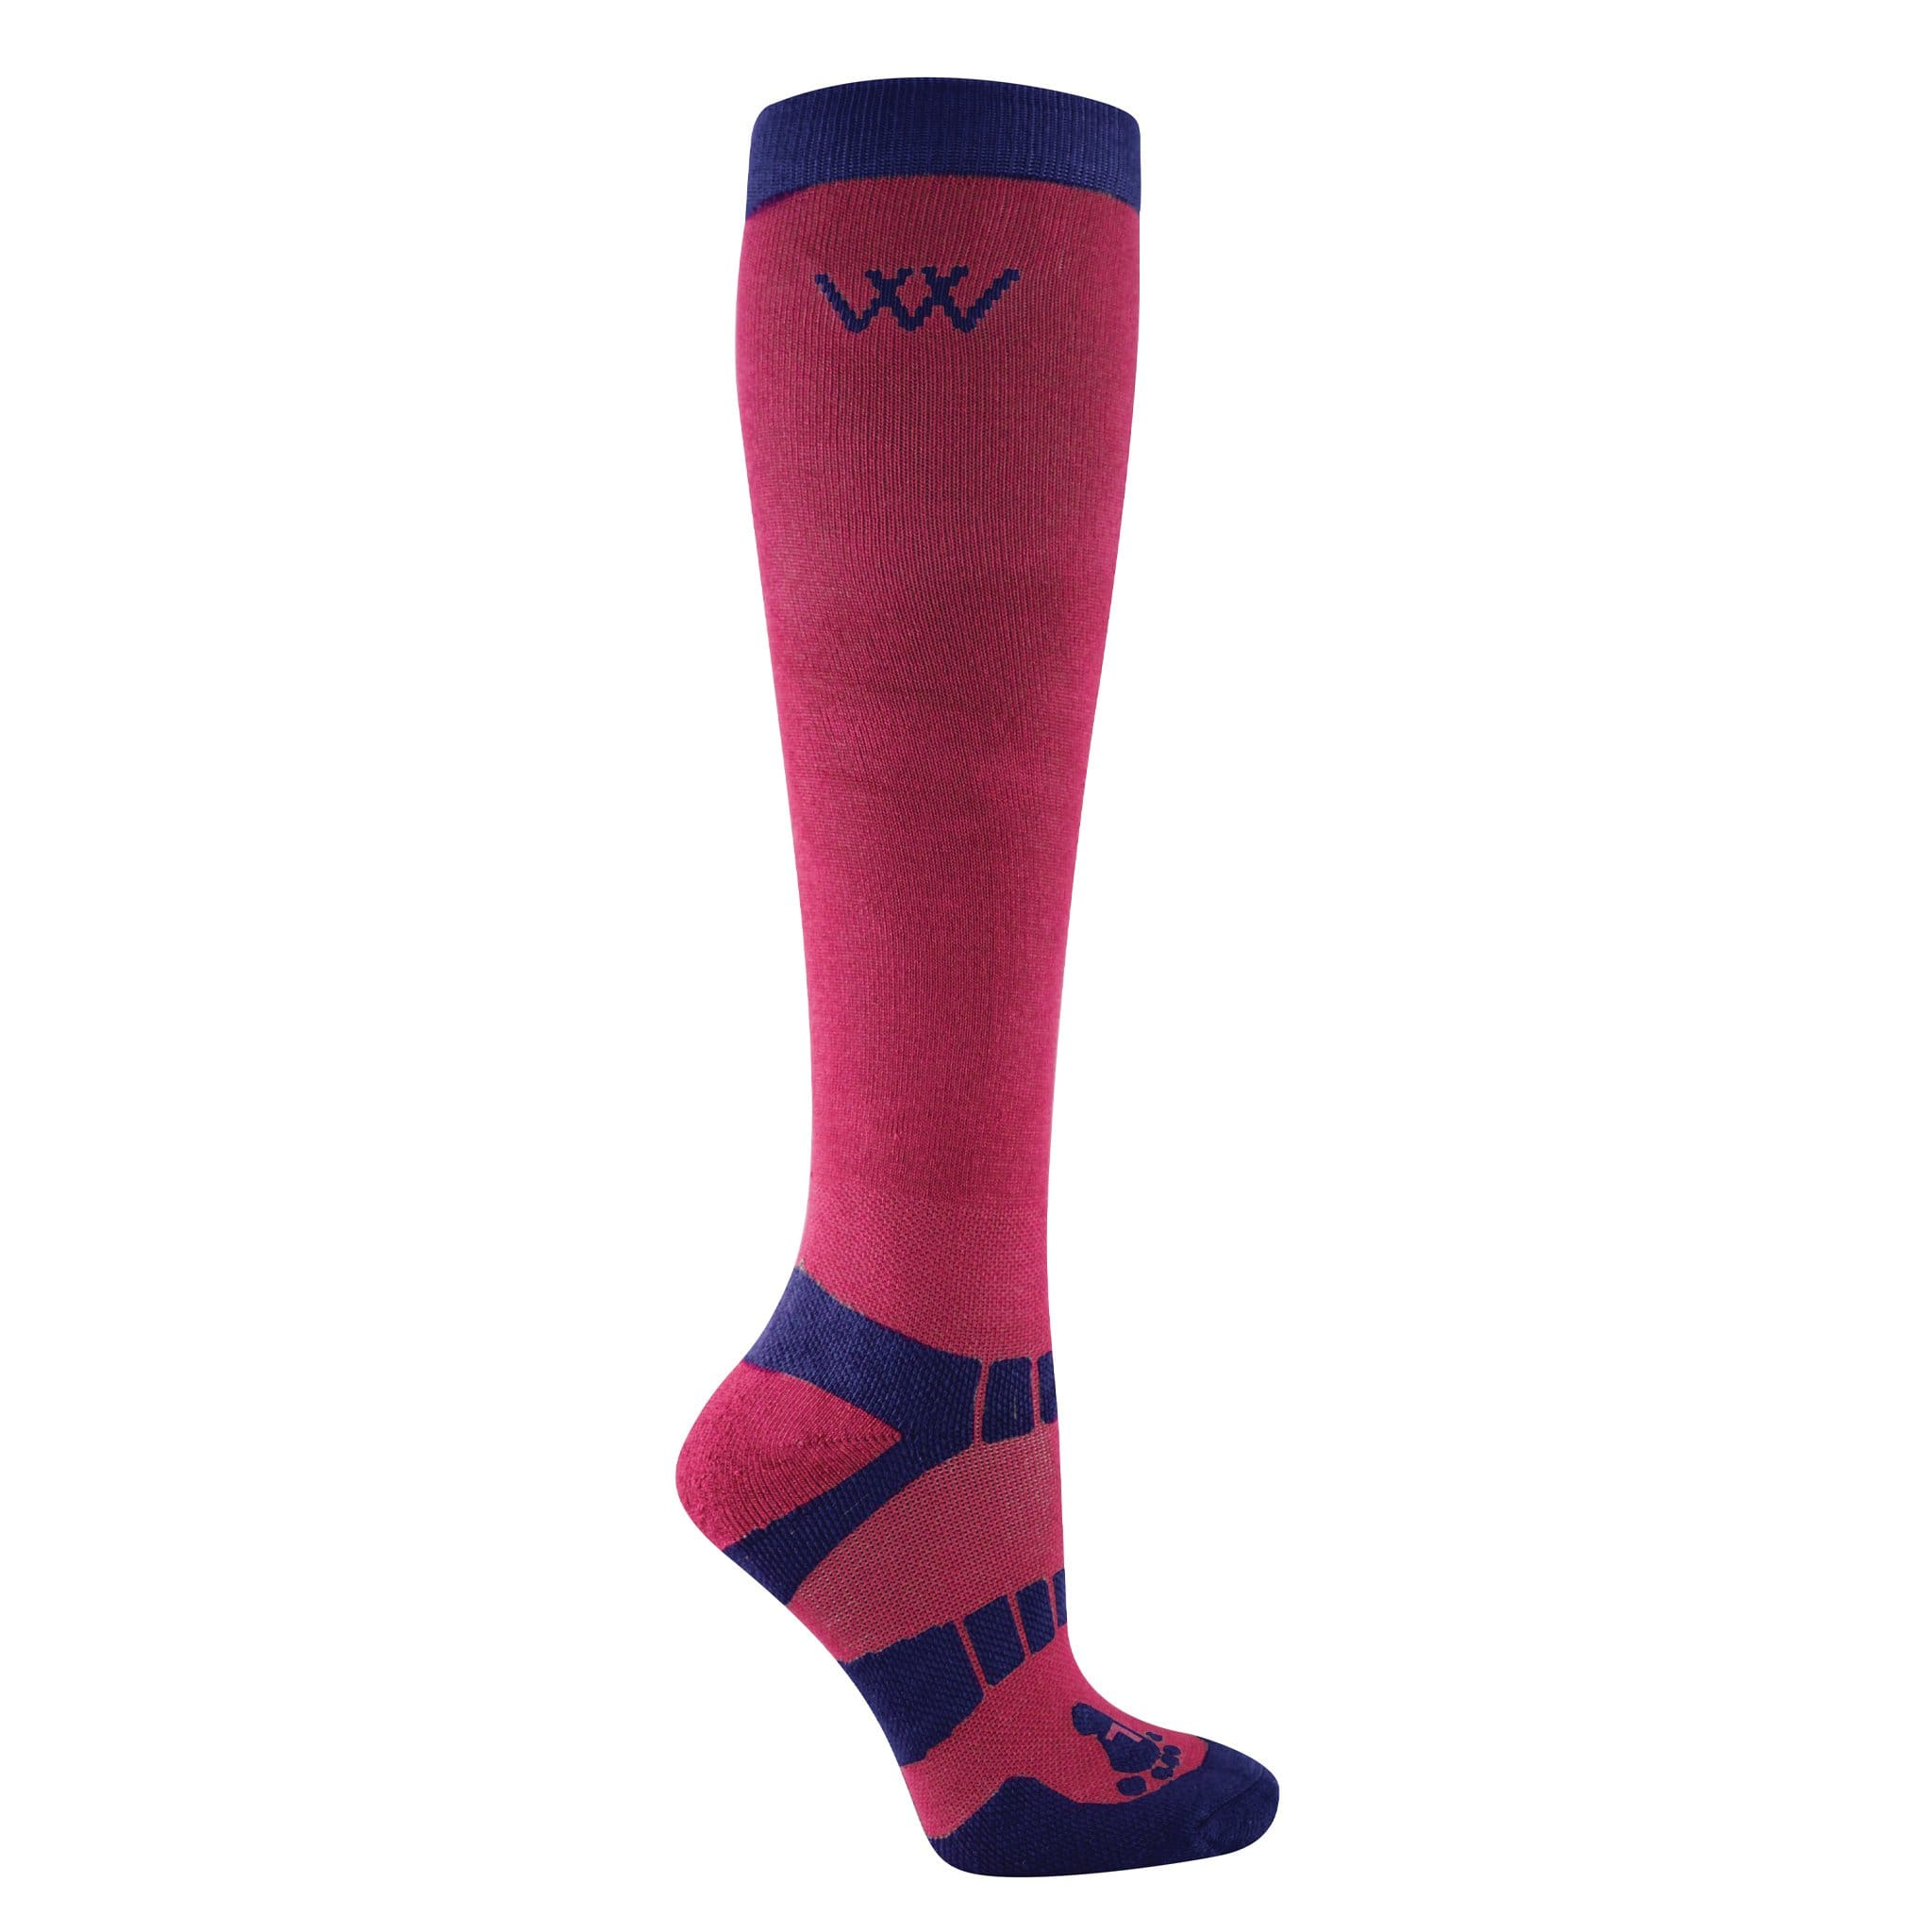 Woof Wear Winter Riding Socks 2 Pack Shiraz WW0015